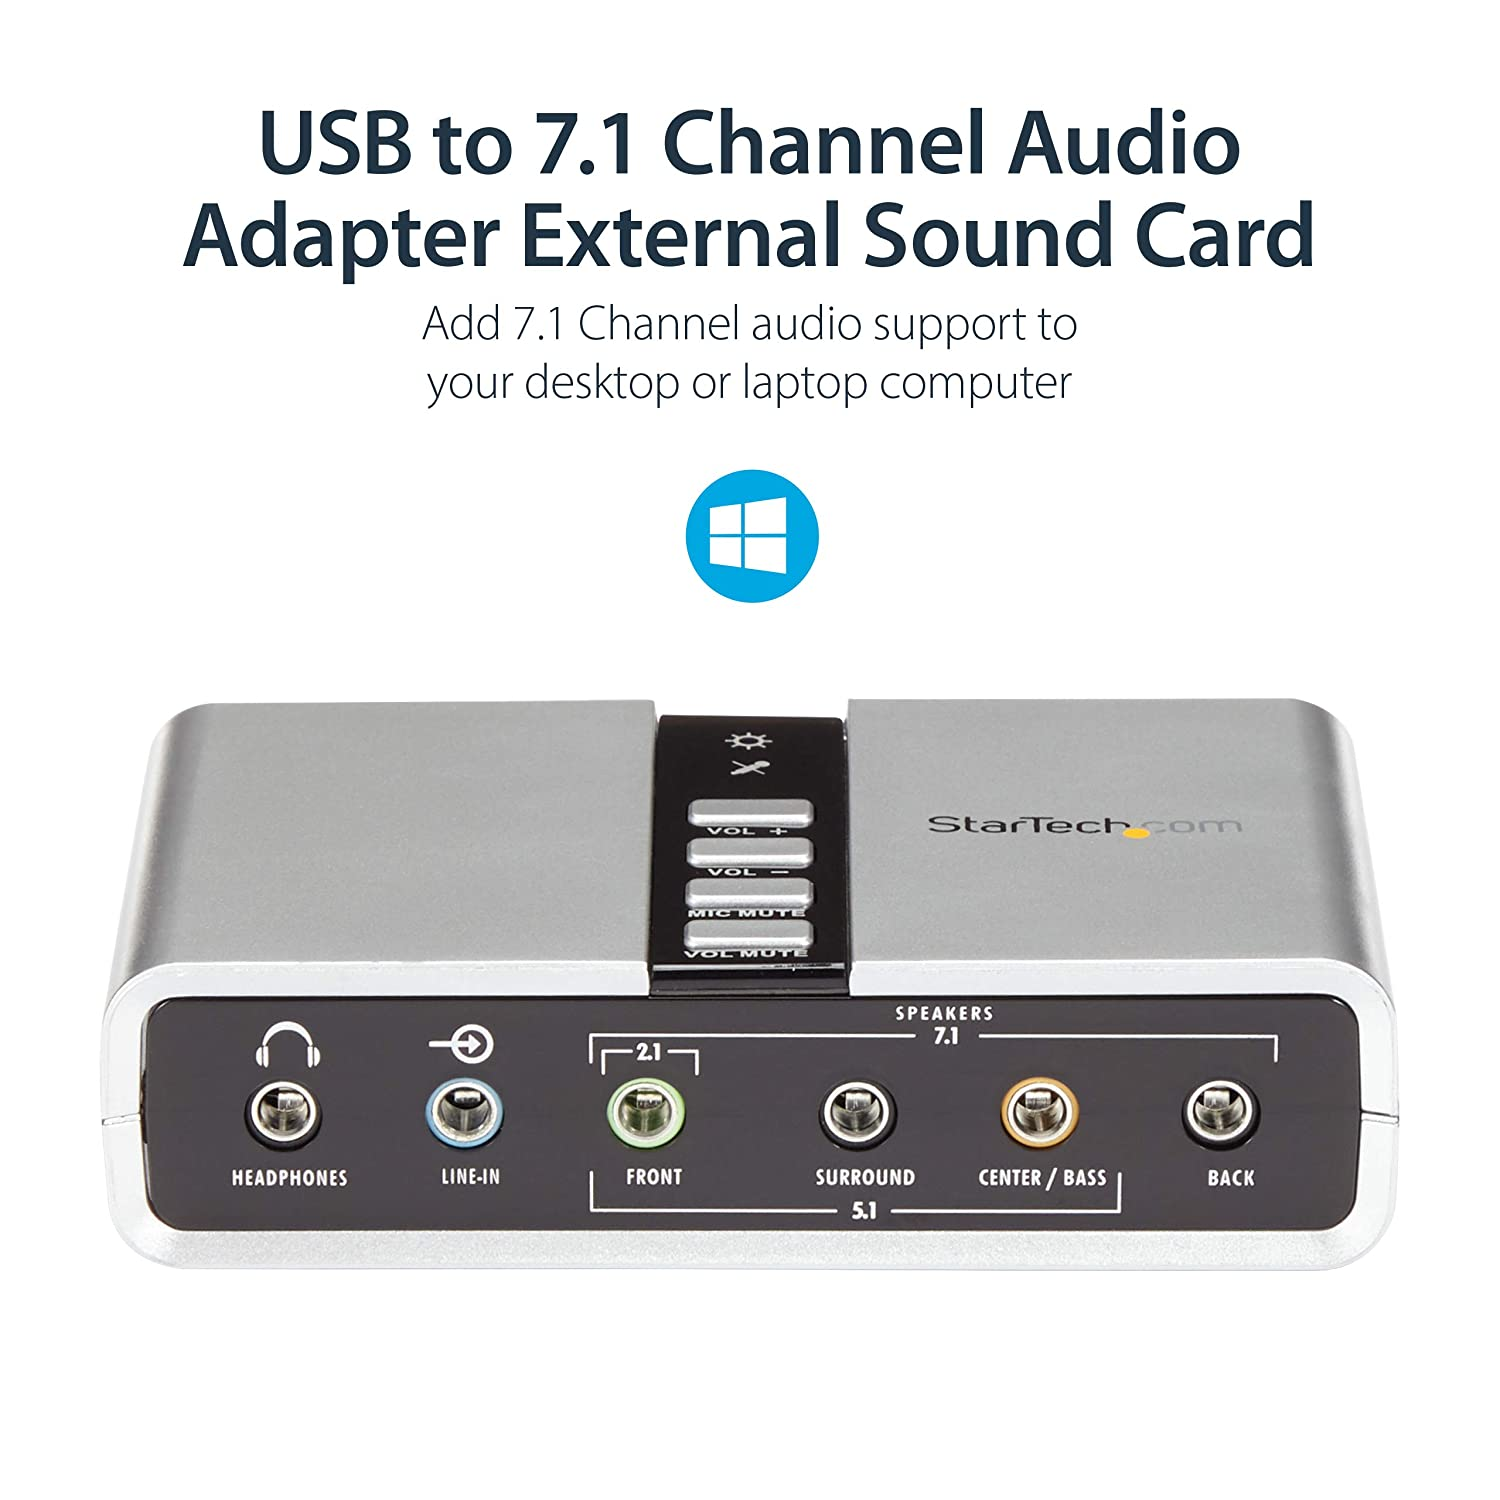 StarTech.com 7.1 USB Sound Card - External Sound Card for Laptop with SPDIF Digital Audio - Sound Card for PC - Silver (ICUSBAUDIO7D)